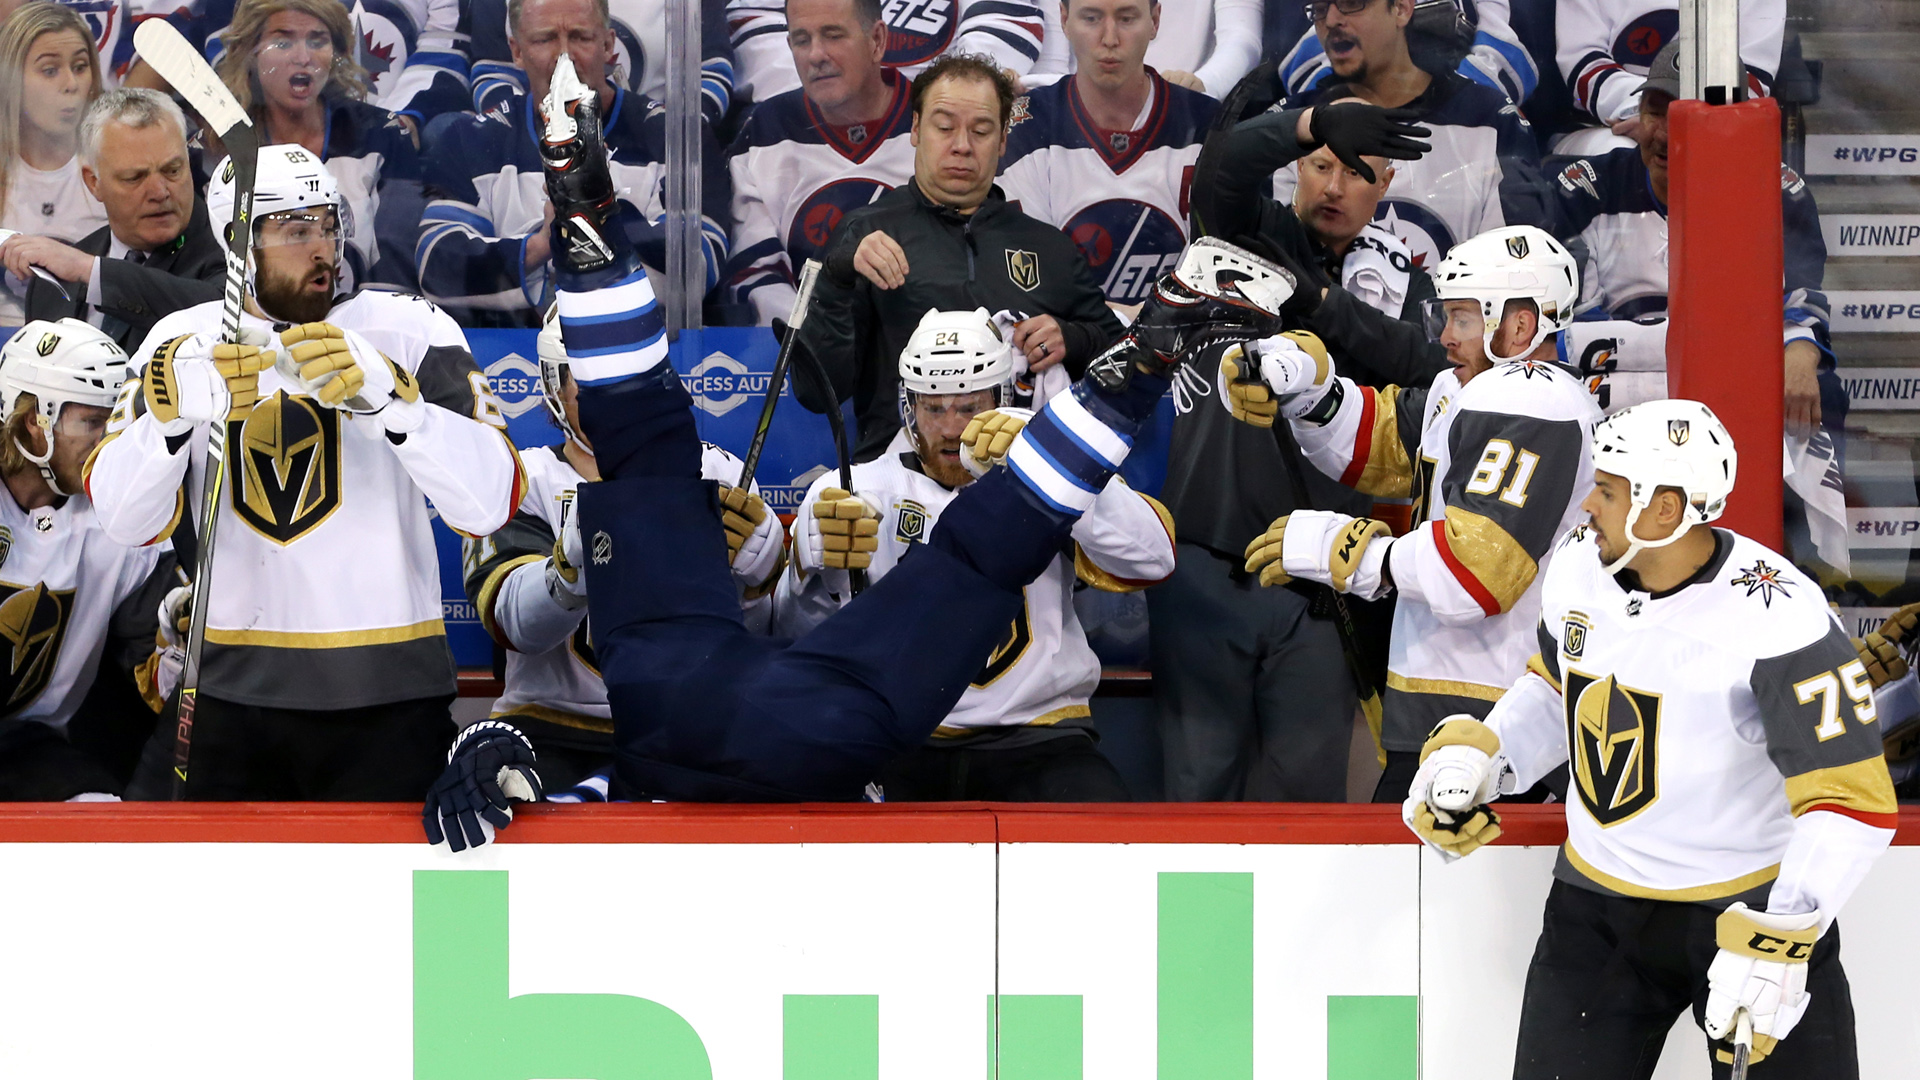 NHL Playoffs 2018: Jets' Blake Wheeler Sent Sprawling Into Golden Knights' Bench (video)